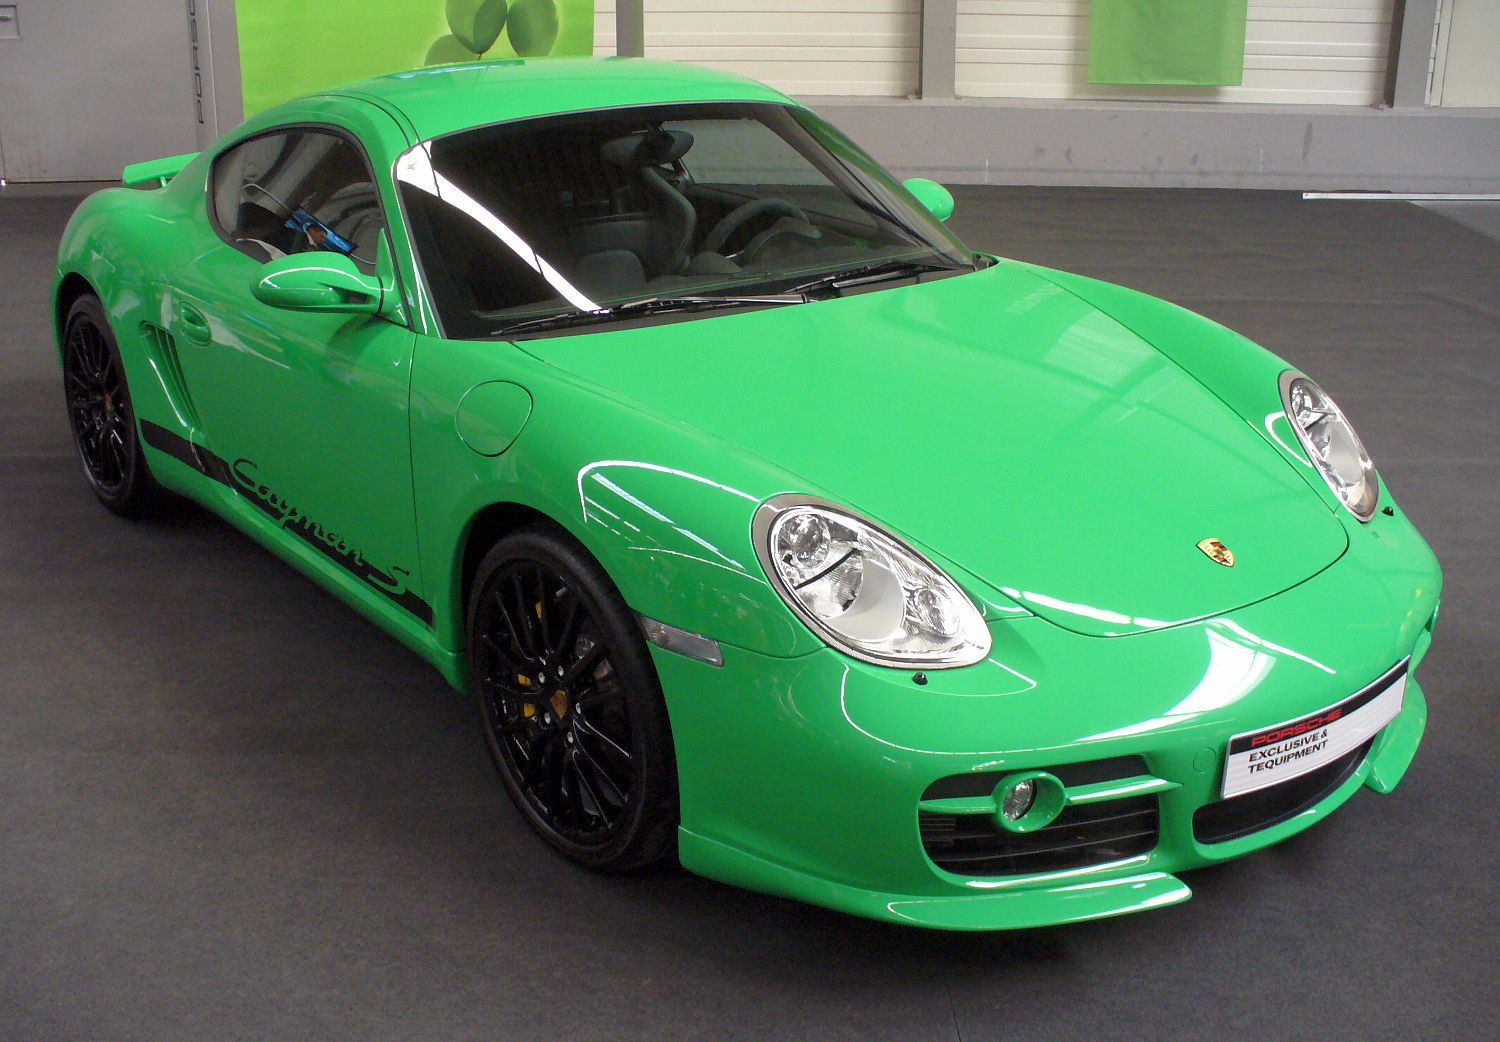 http://upload.wikimedia.org/wikipedia/commons/c/c0/Porsche_Cayman_S.JPG